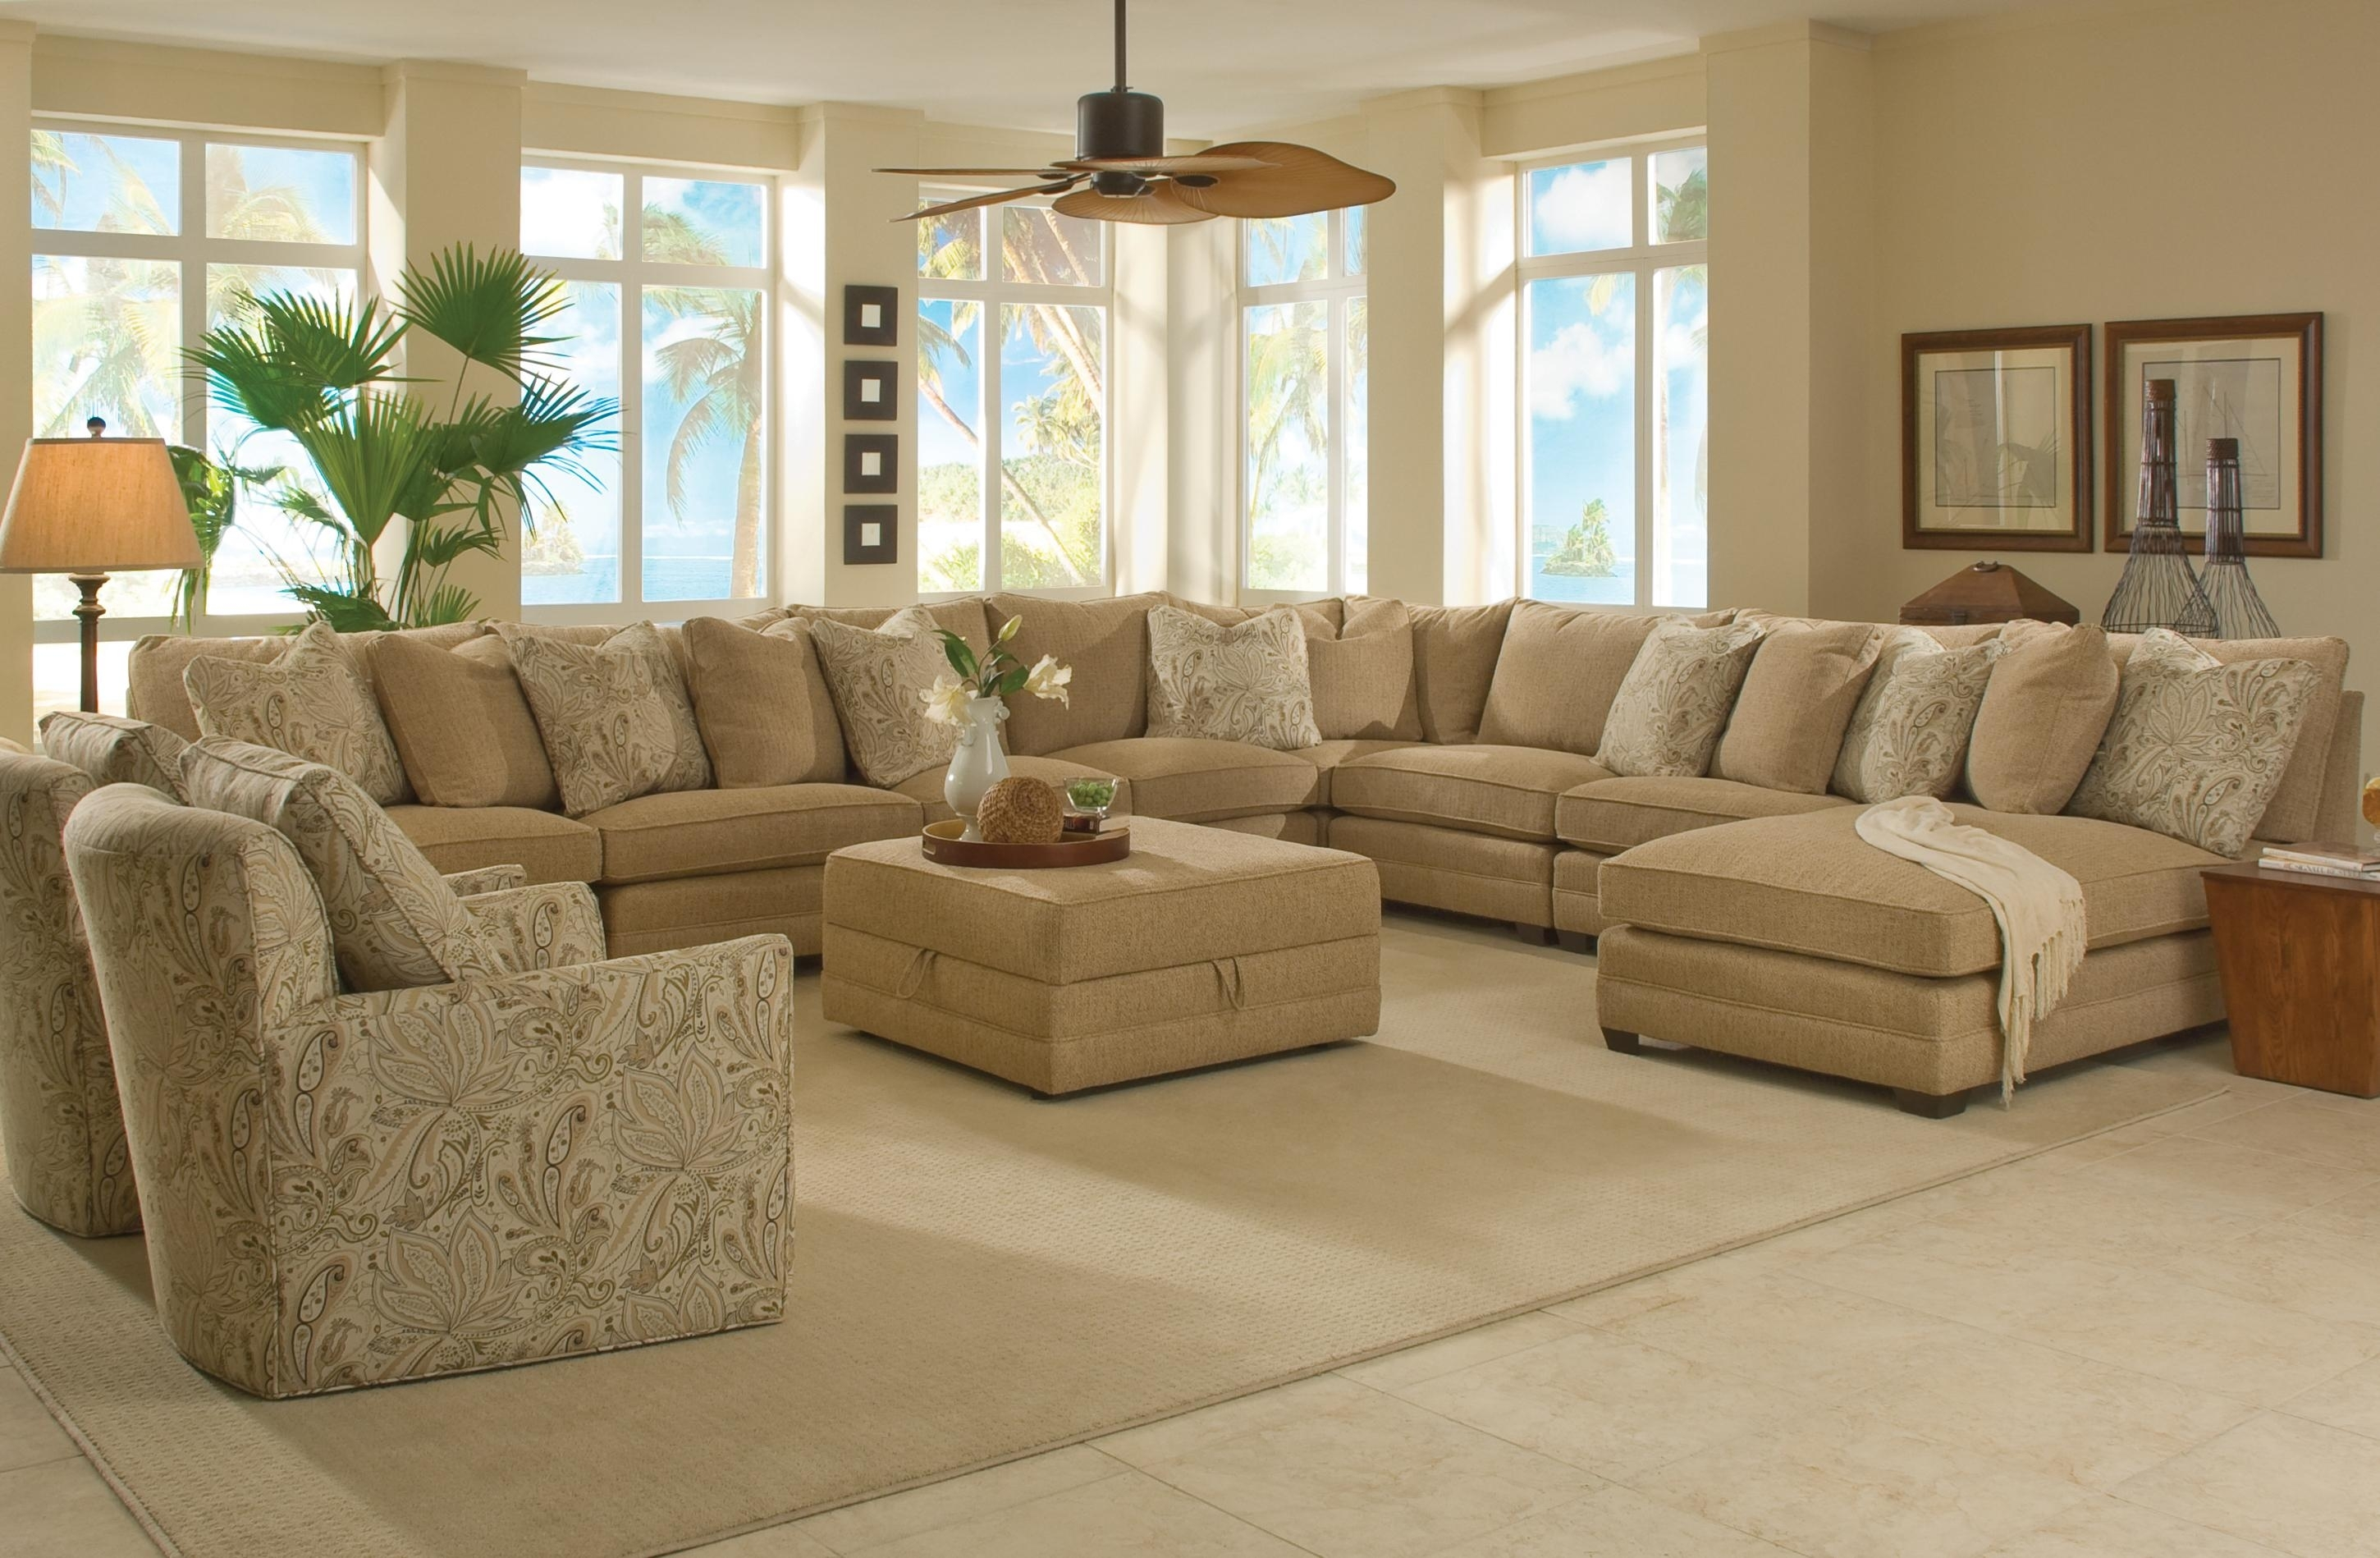 Sectional Sofas Austin – Home And Textiles For Sectional Sofas At Austin (View 4 of 10)